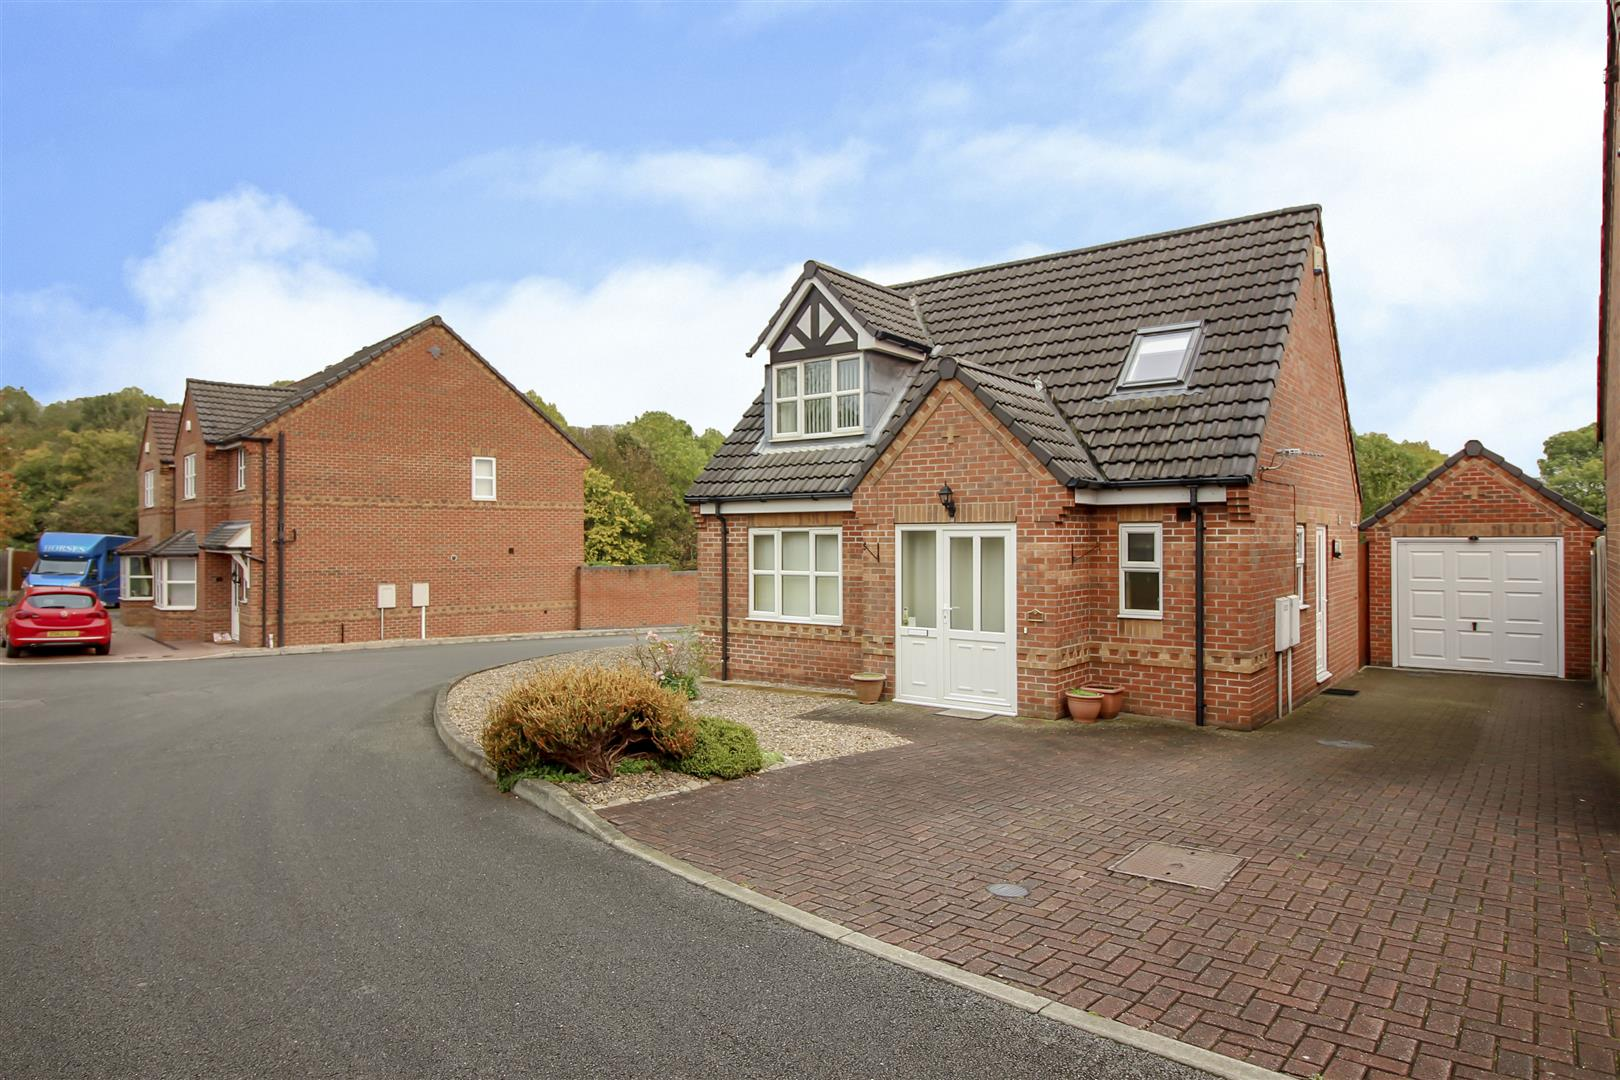 2 Bedrooms Detached House for sale in Daniel Mews, Sandiacre, Nottingham